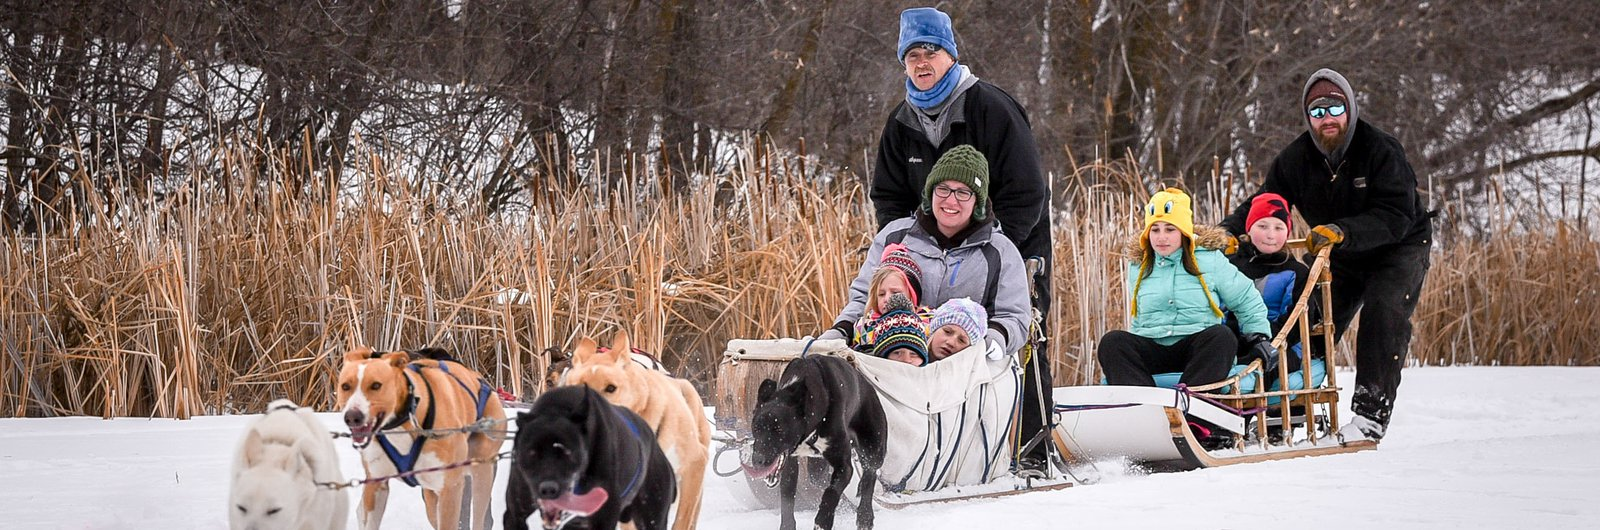 Dog sledding in Thief River Falls